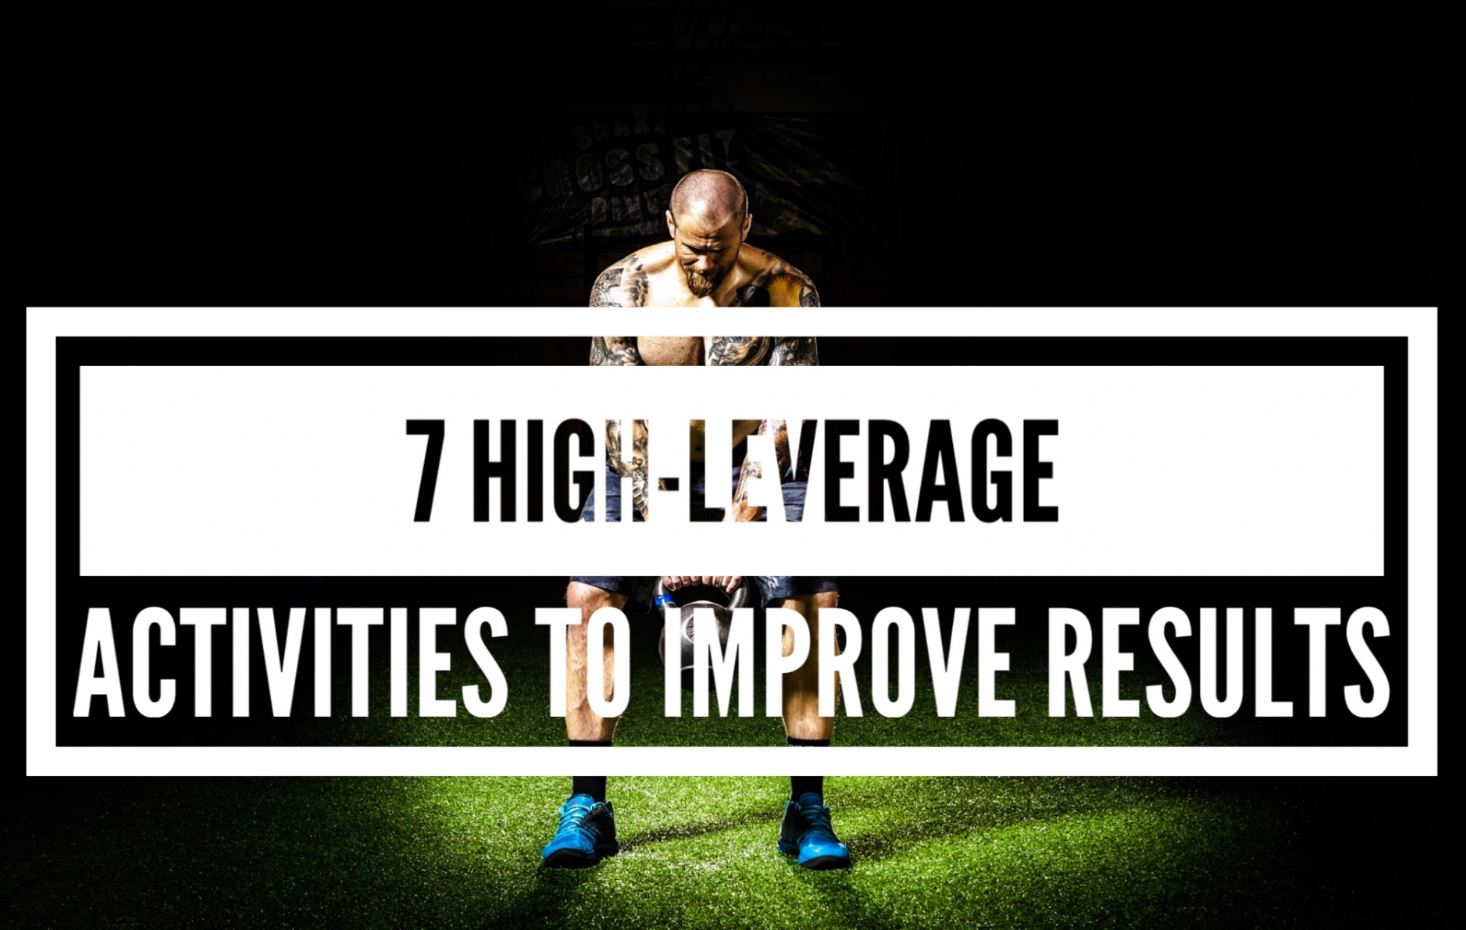 7 high leverage activities to improve results